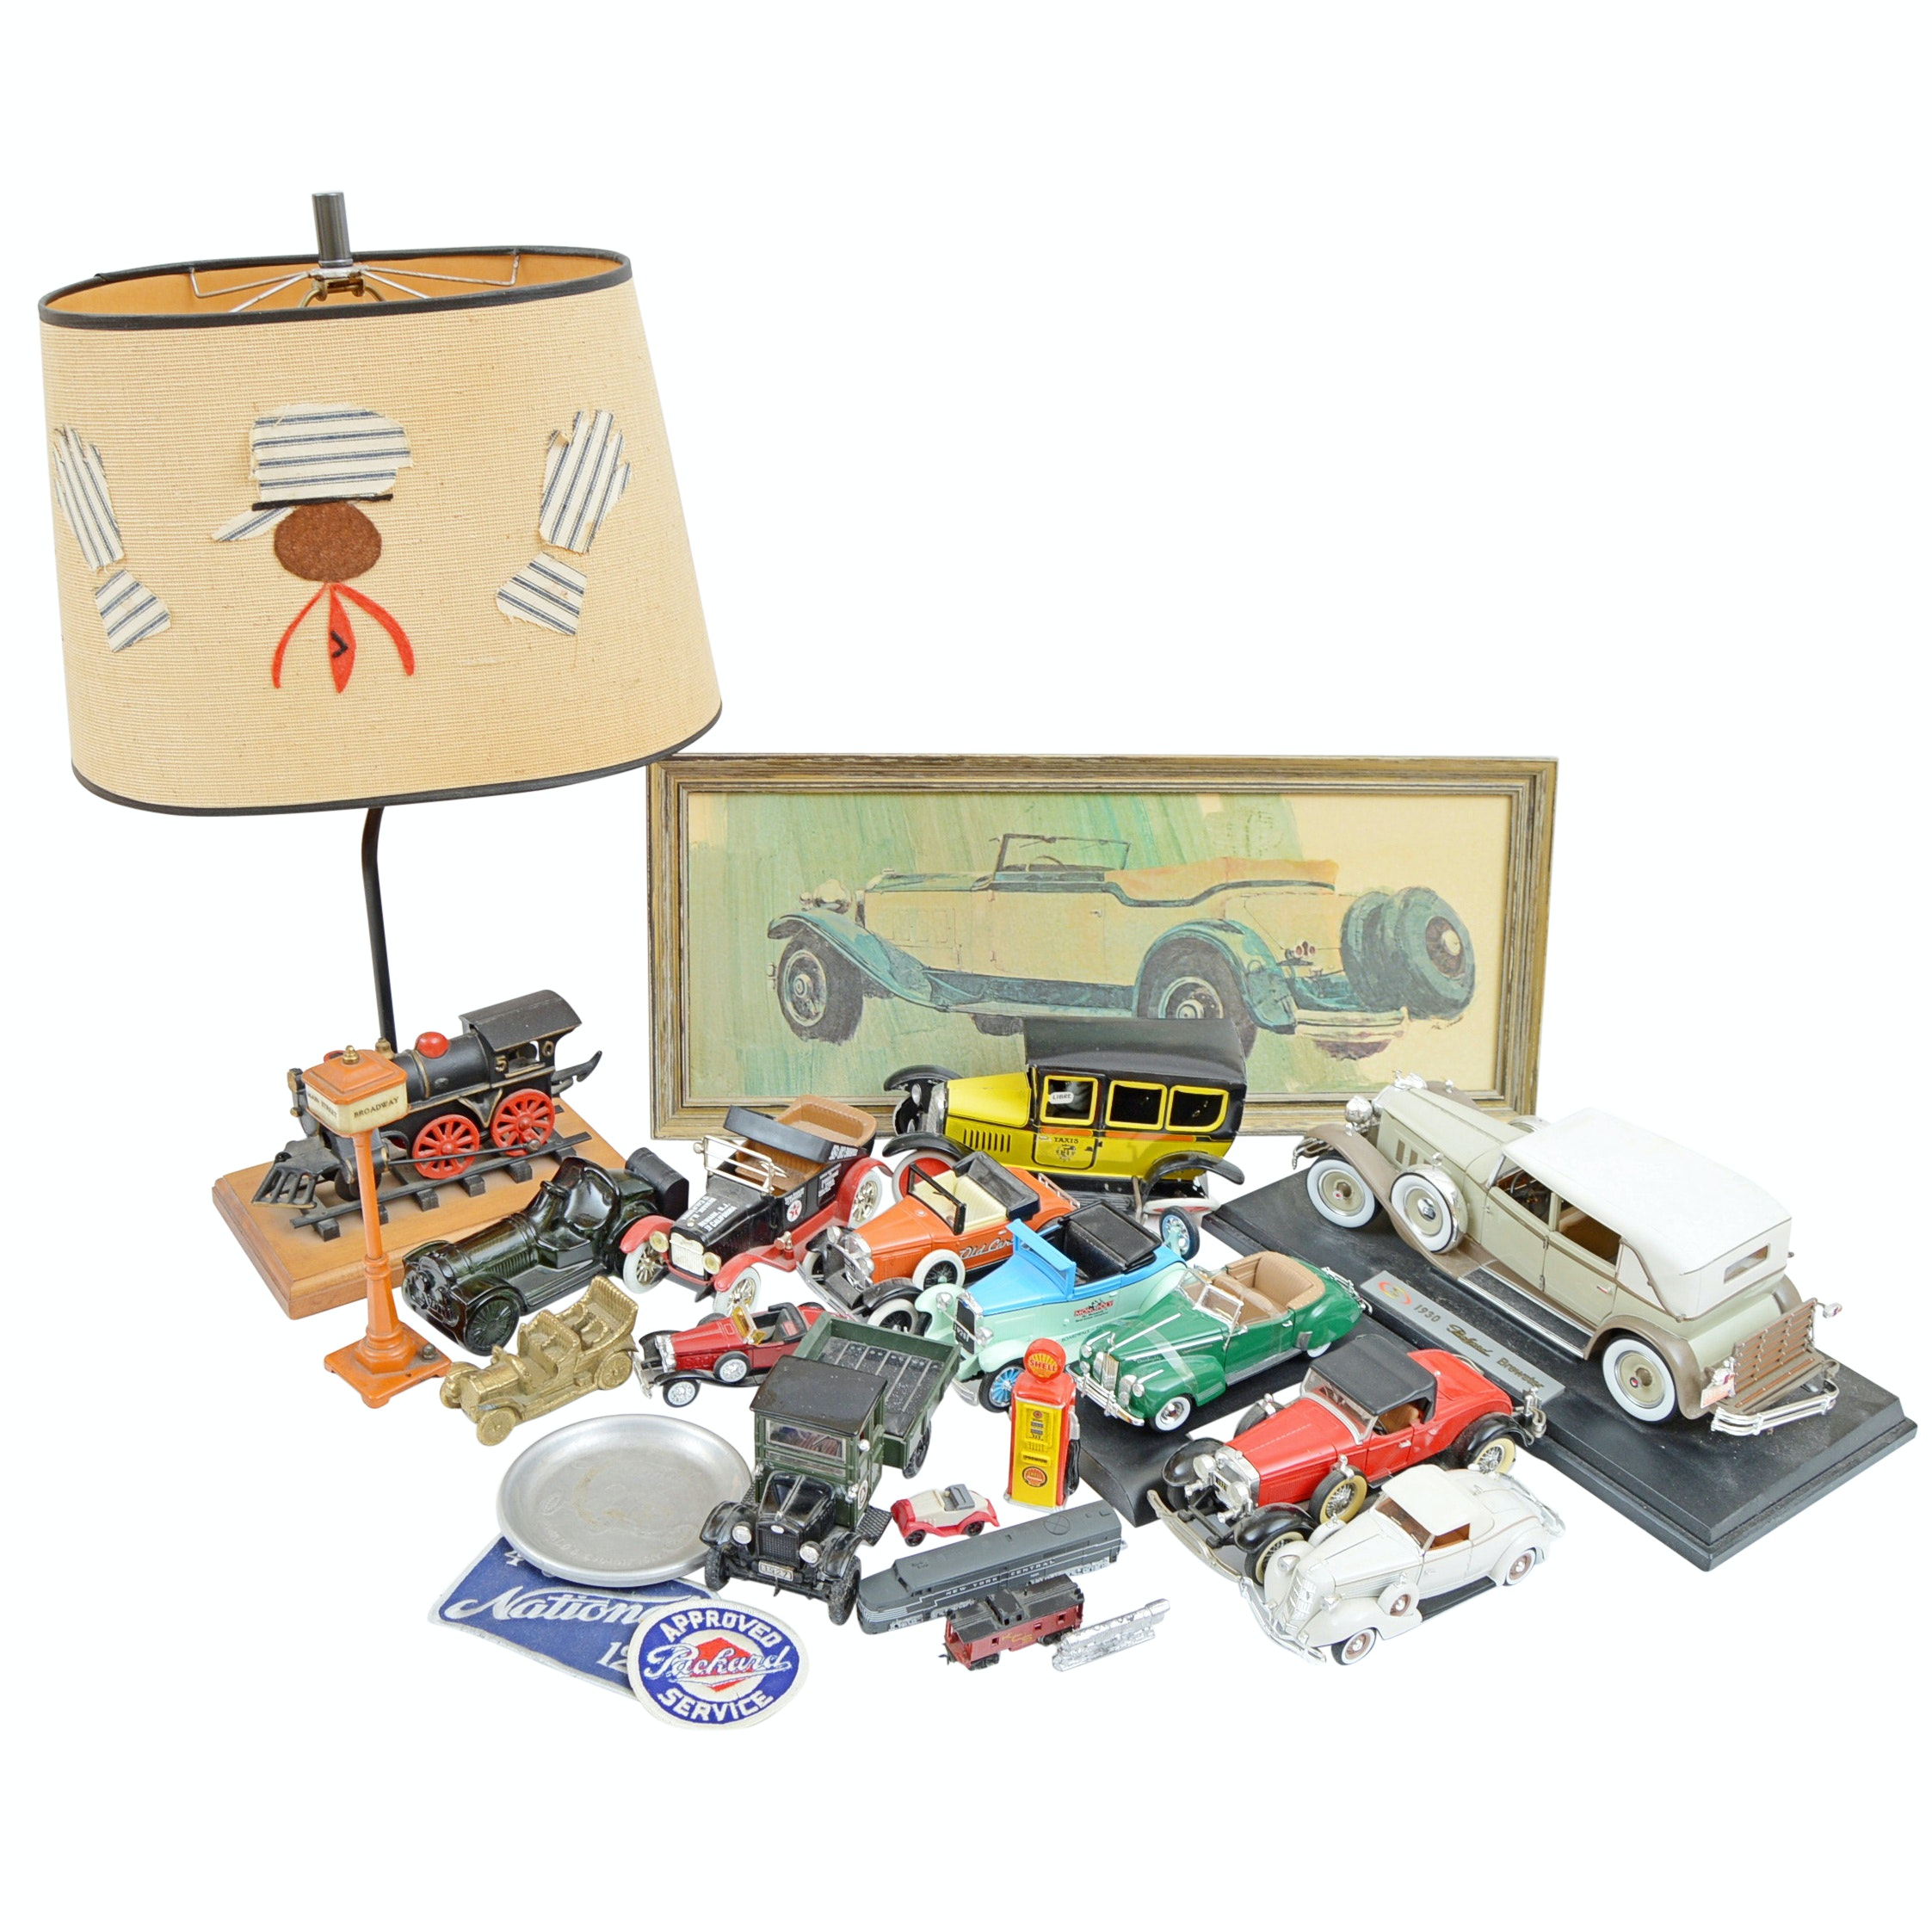 Model Cars and Trains with Train Lamp